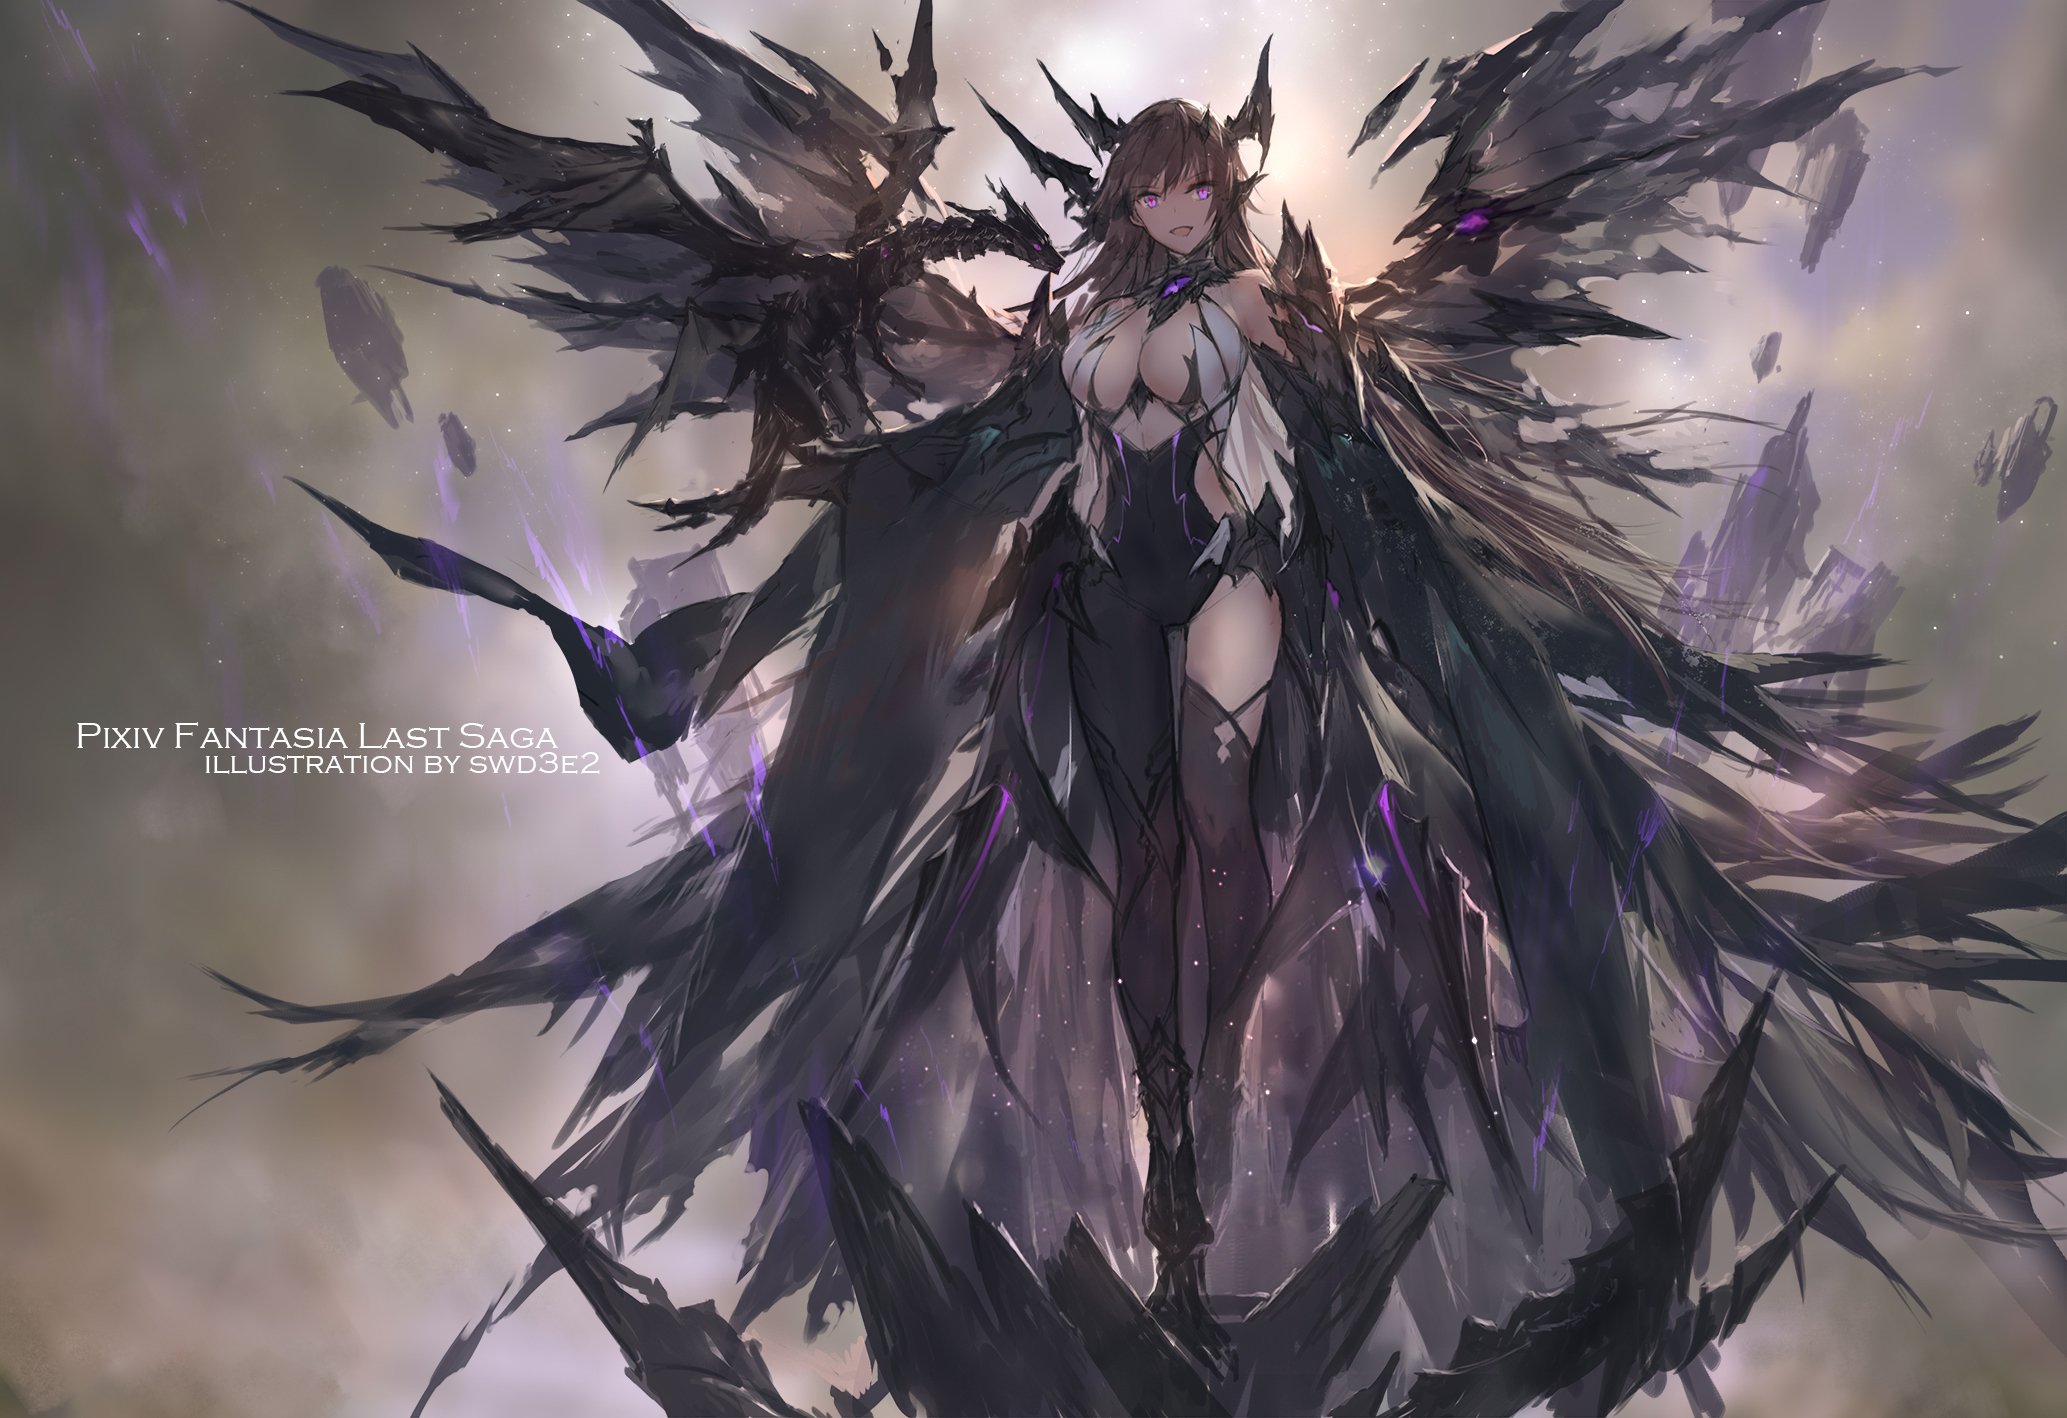 Pixiv Fantasia Anime Girls Anime Women Fantasy Girl Brunette Long Hair Smiling Wings Dragon Armor Fa Wallpaper Resolution 2067x1418 Id 172597 Wallha Com Hopefully i have some more time to work. pixiv fantasia anime girls anime women